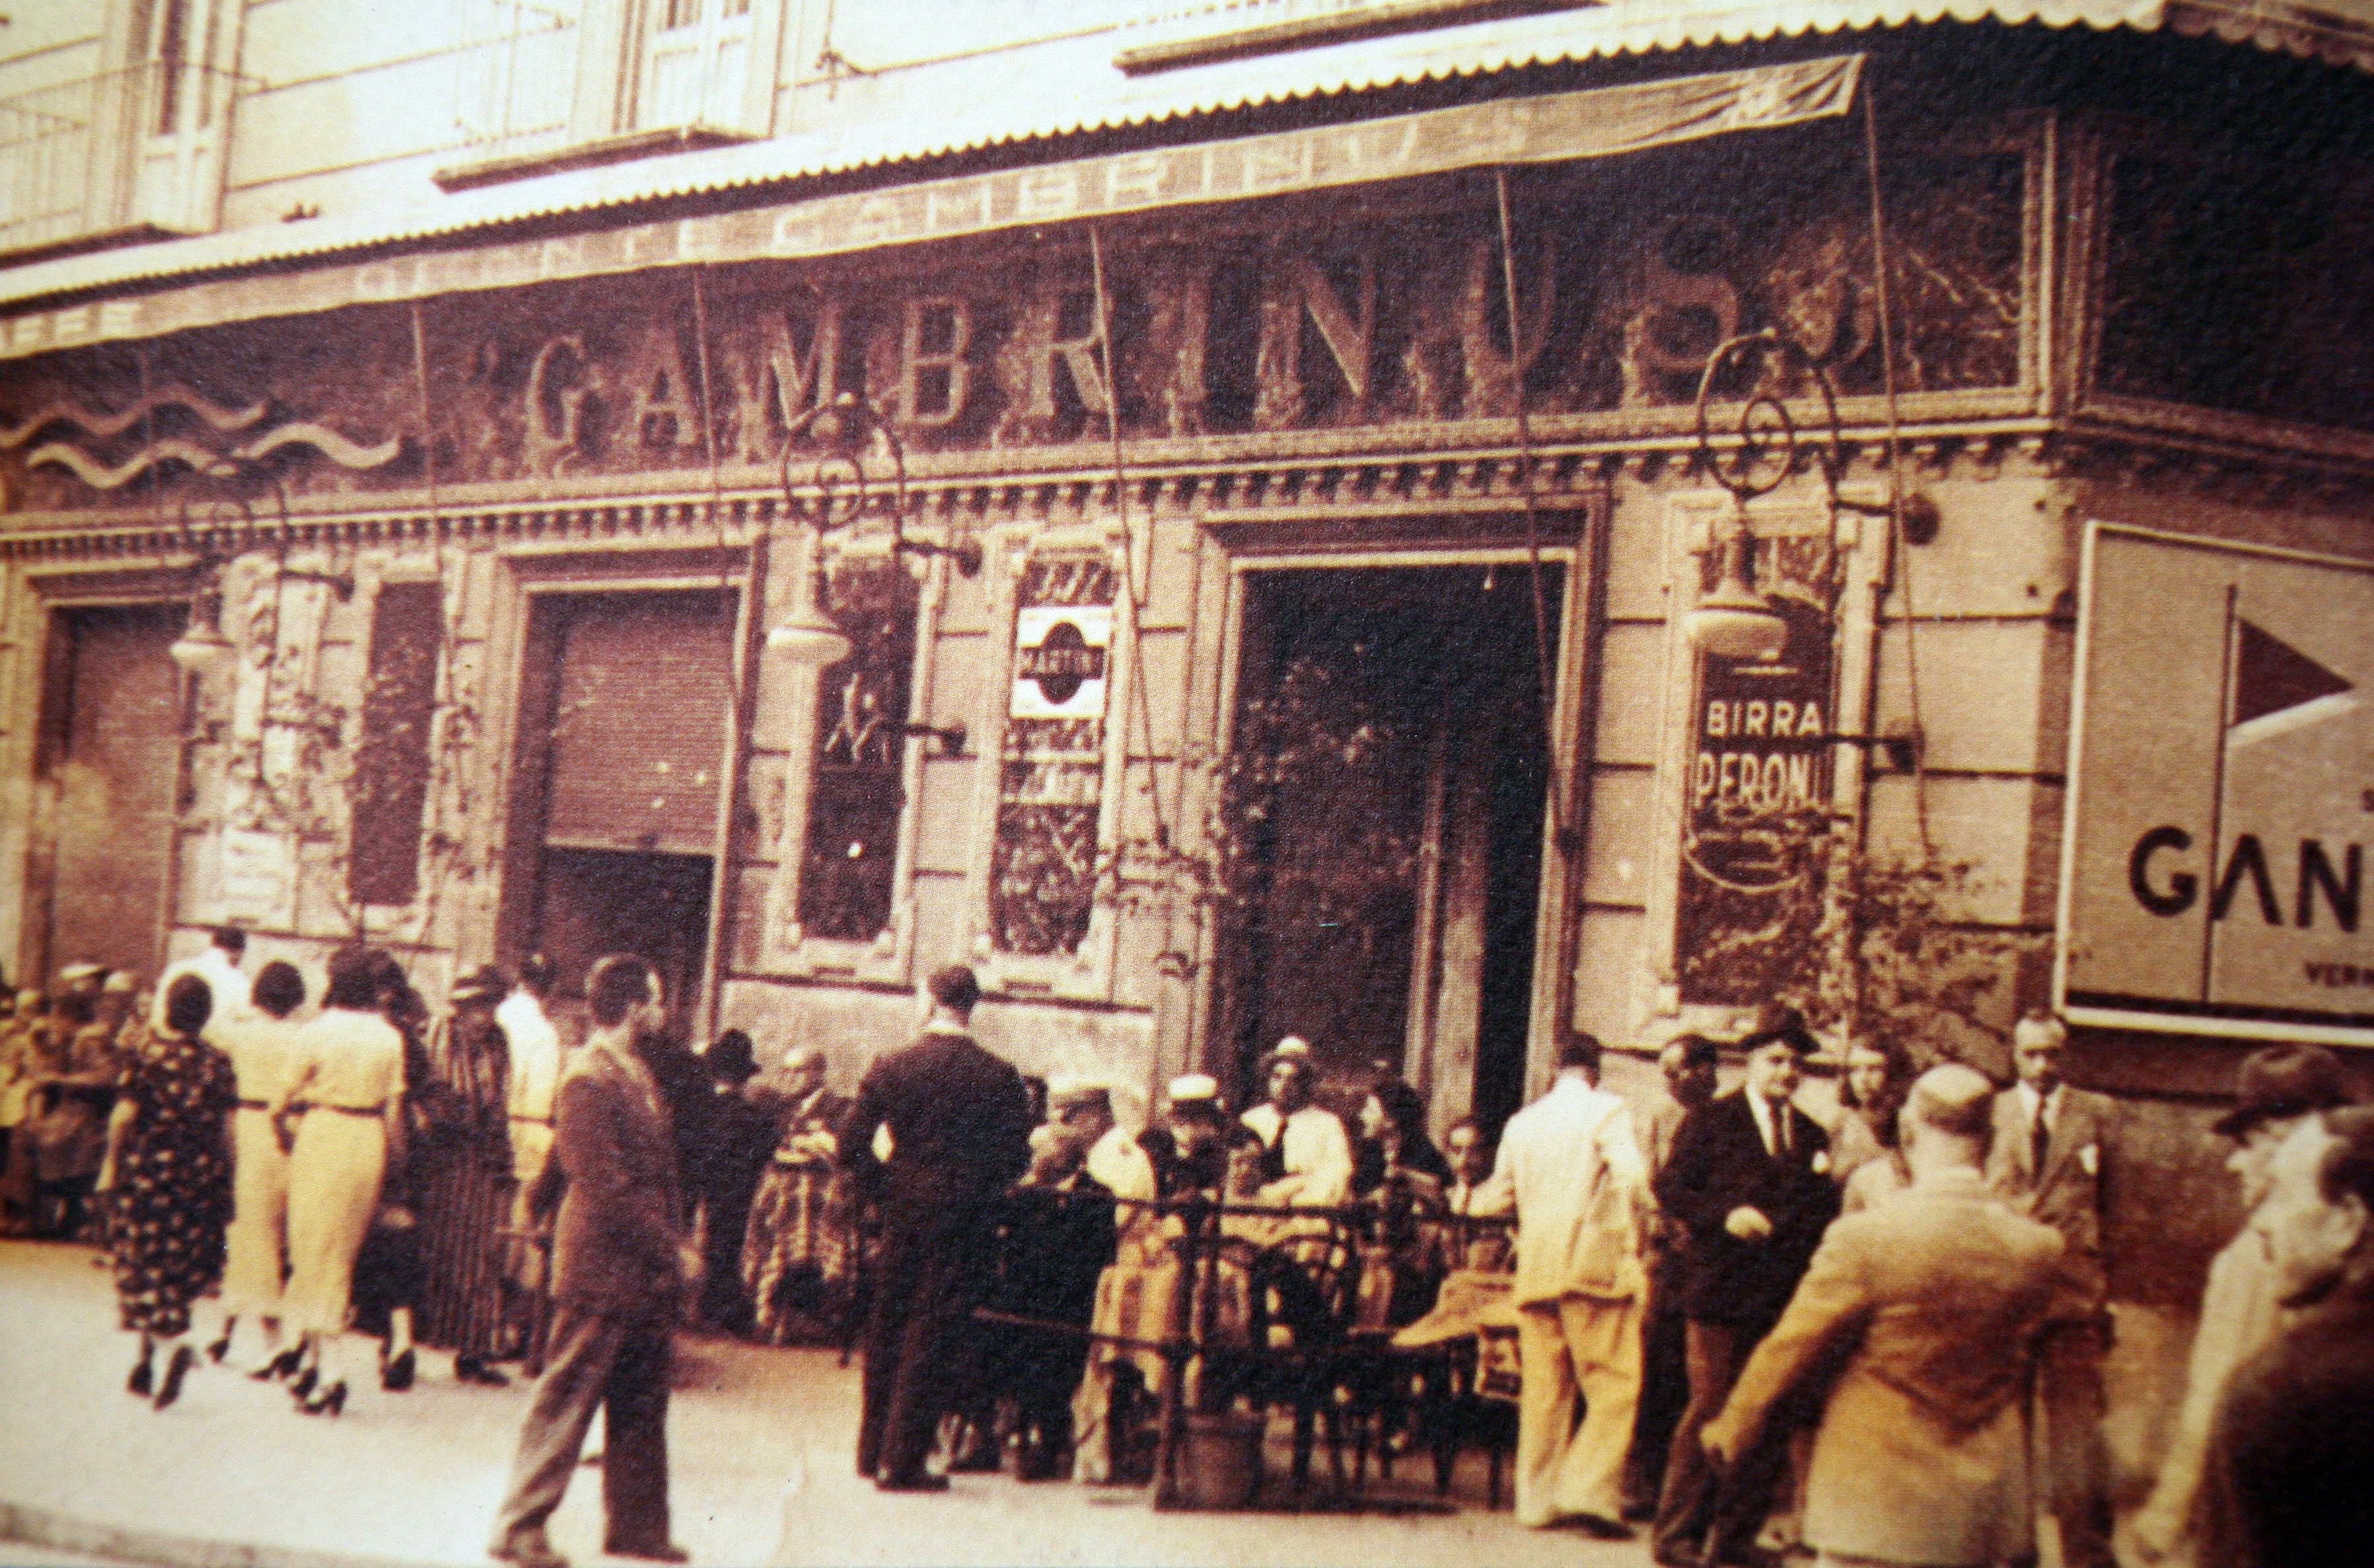 Gambrinus, 20s of the 20th century